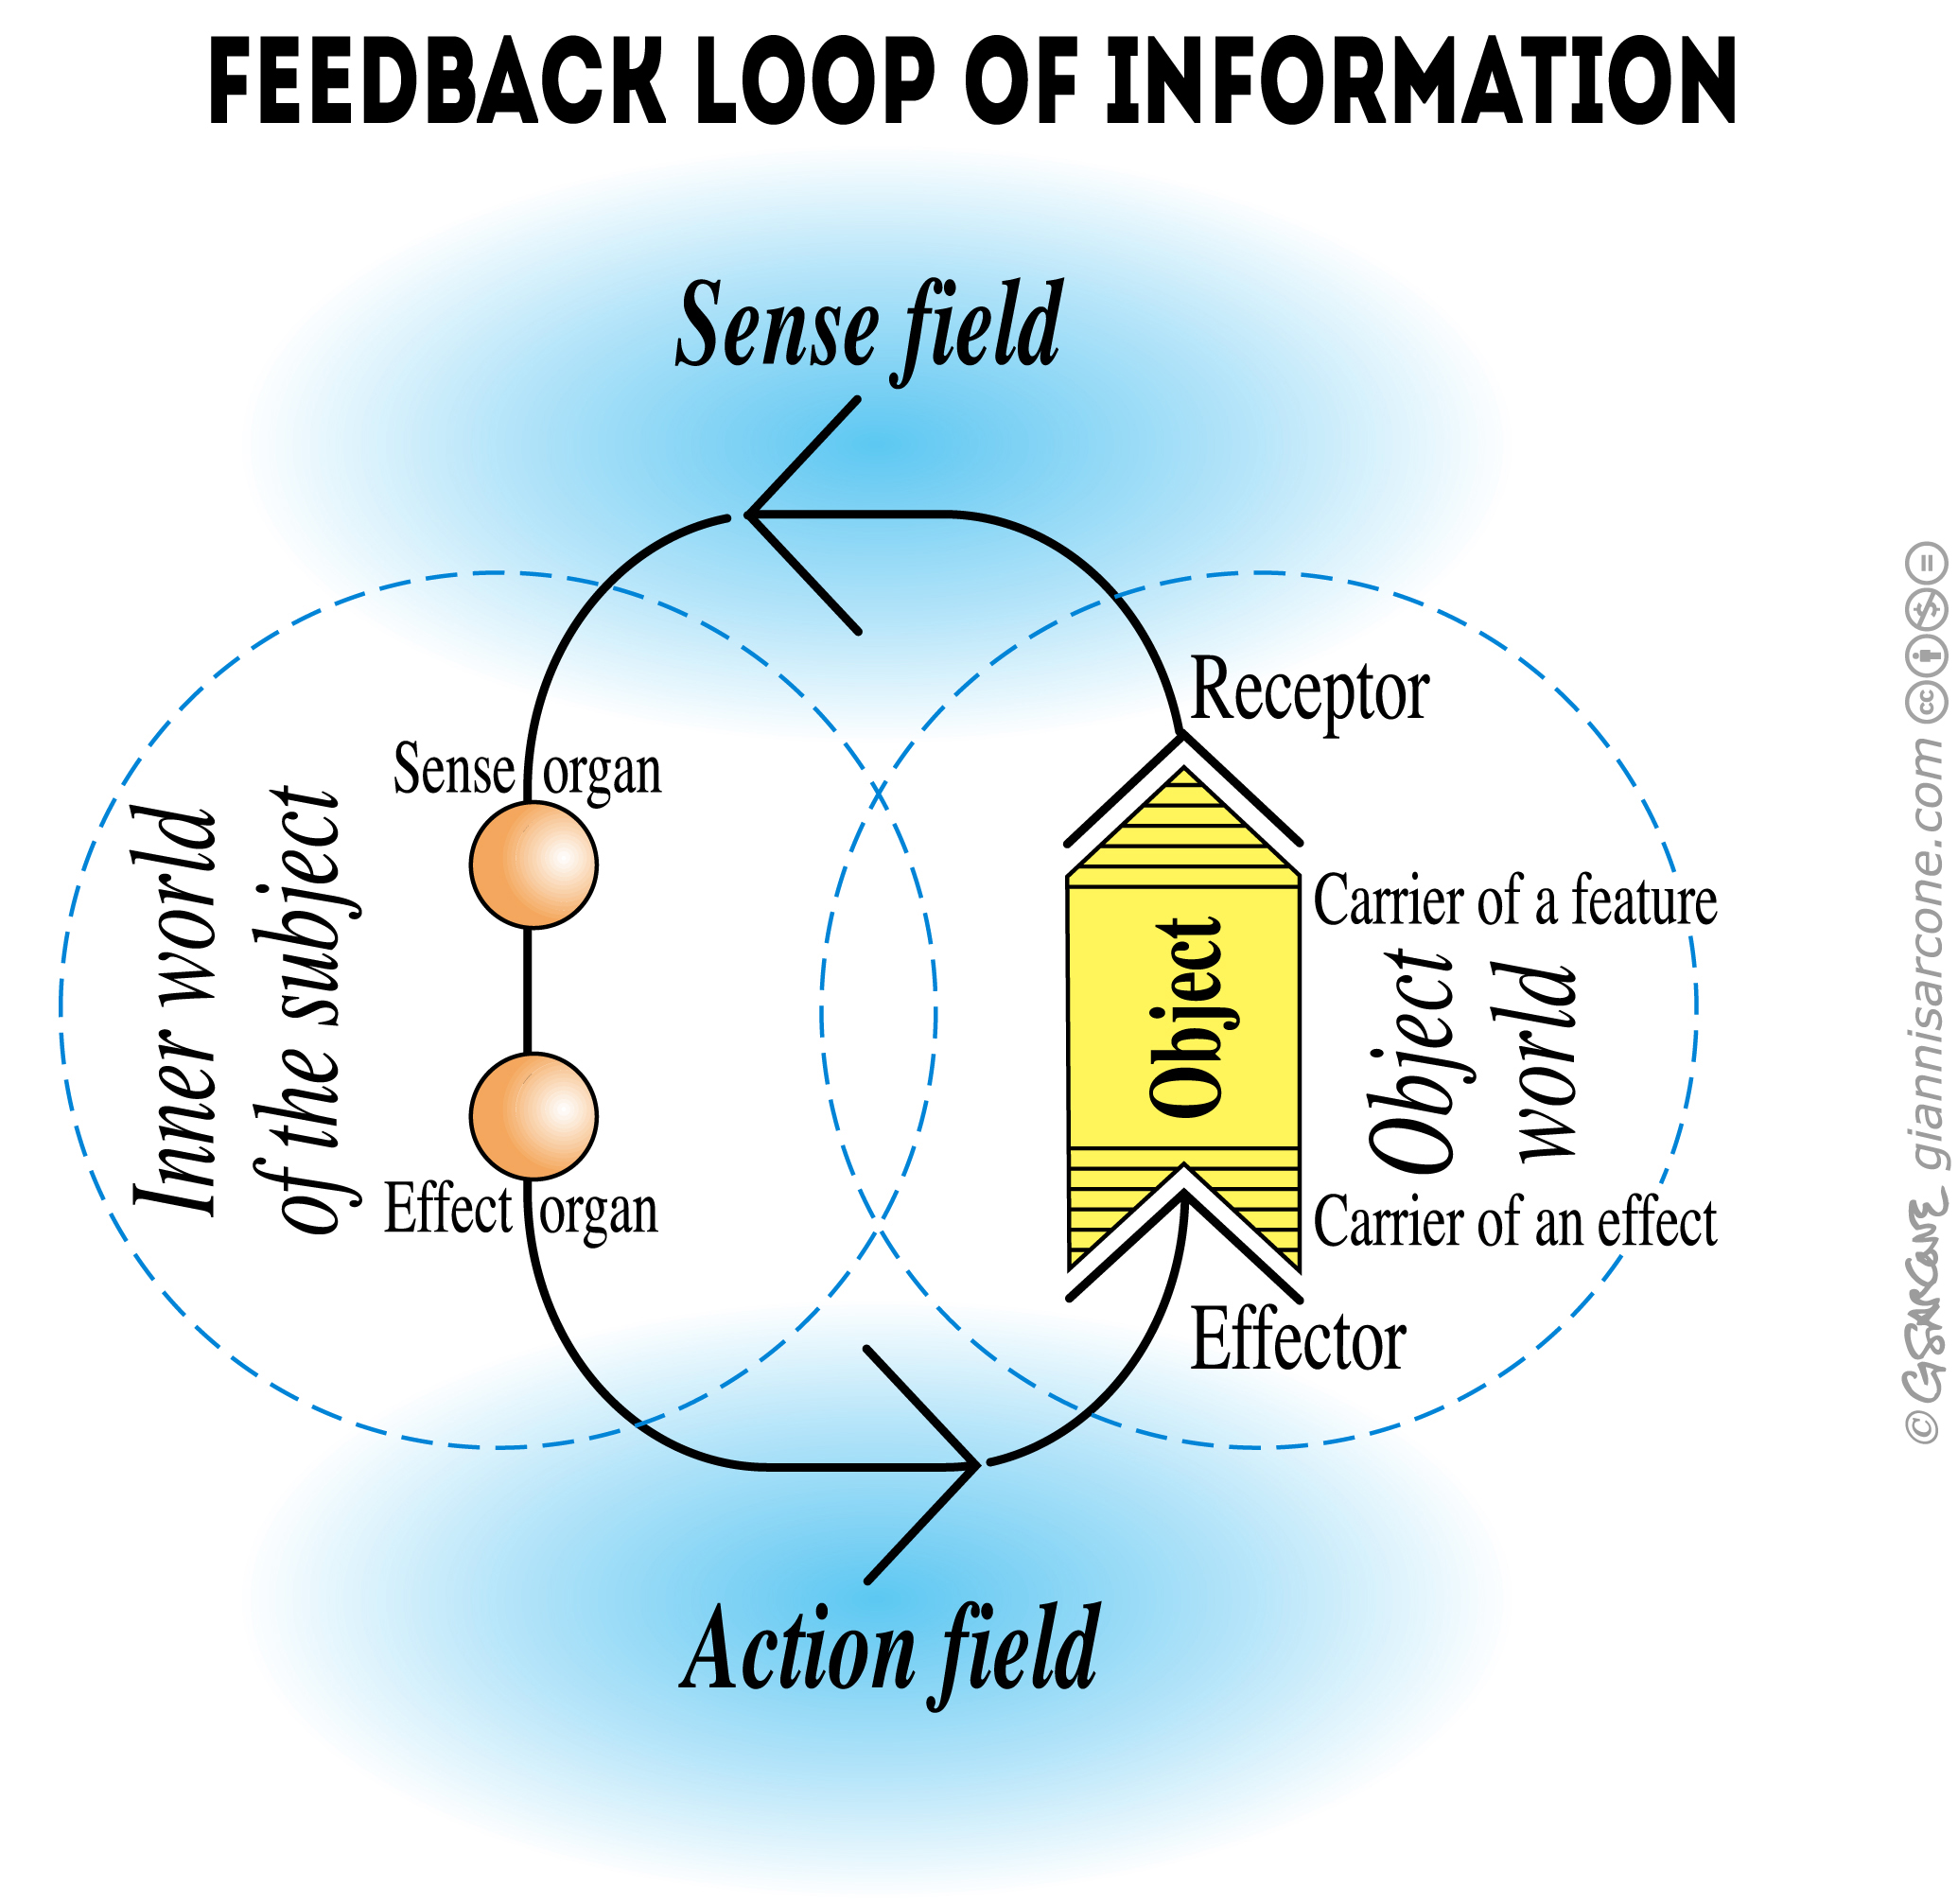 feedback loop of information